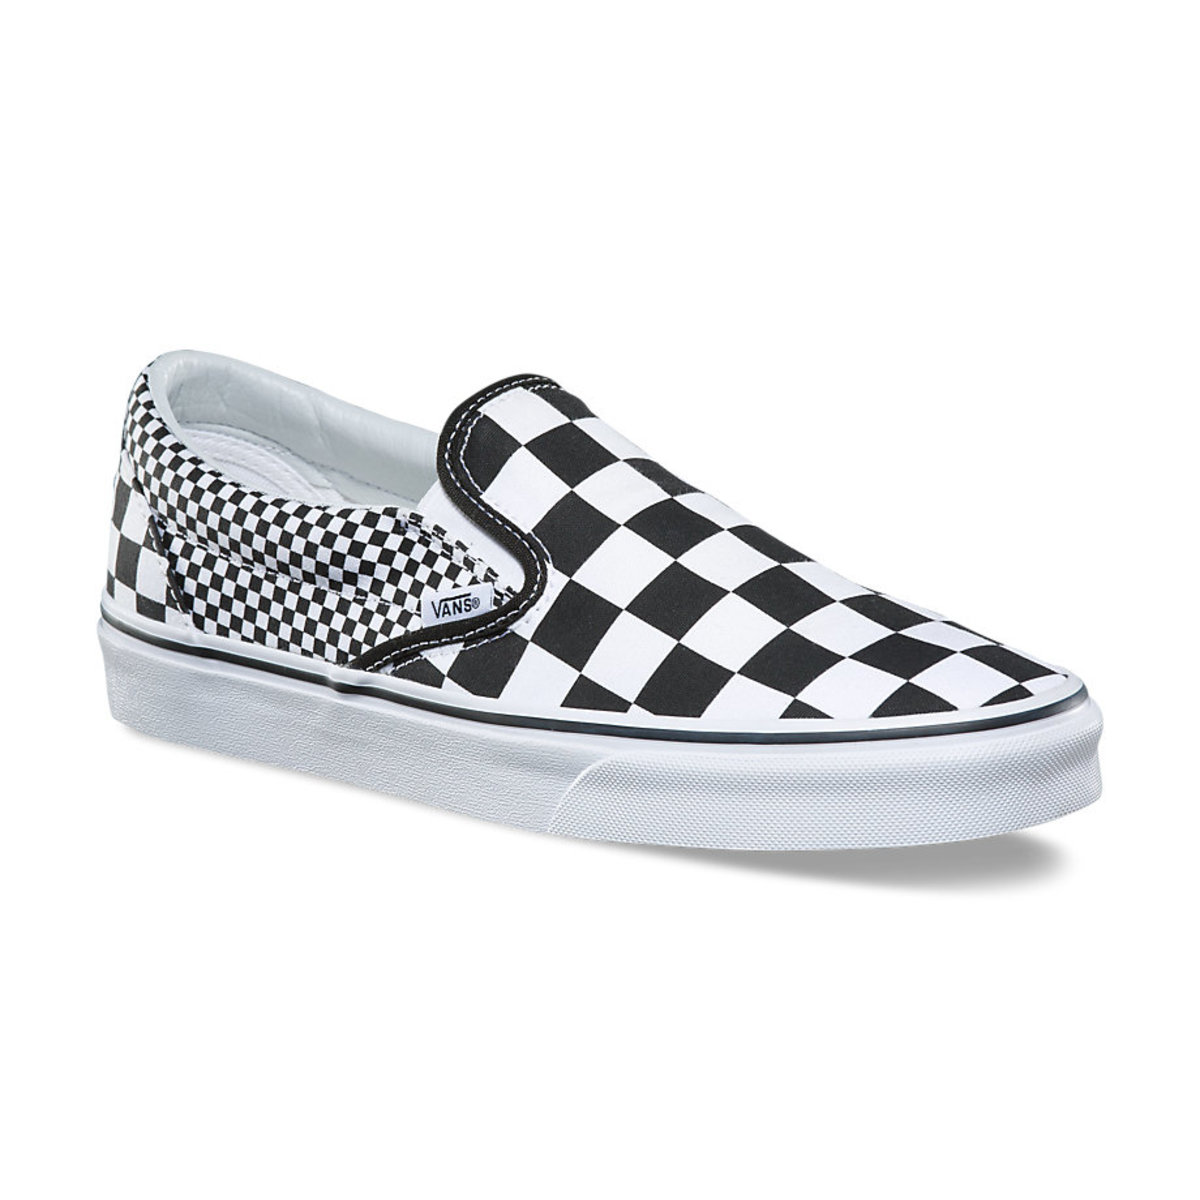 boty VANS - UA CLASSIC SLIP-ON (MIX CHECKER) - VA38F7Q9B